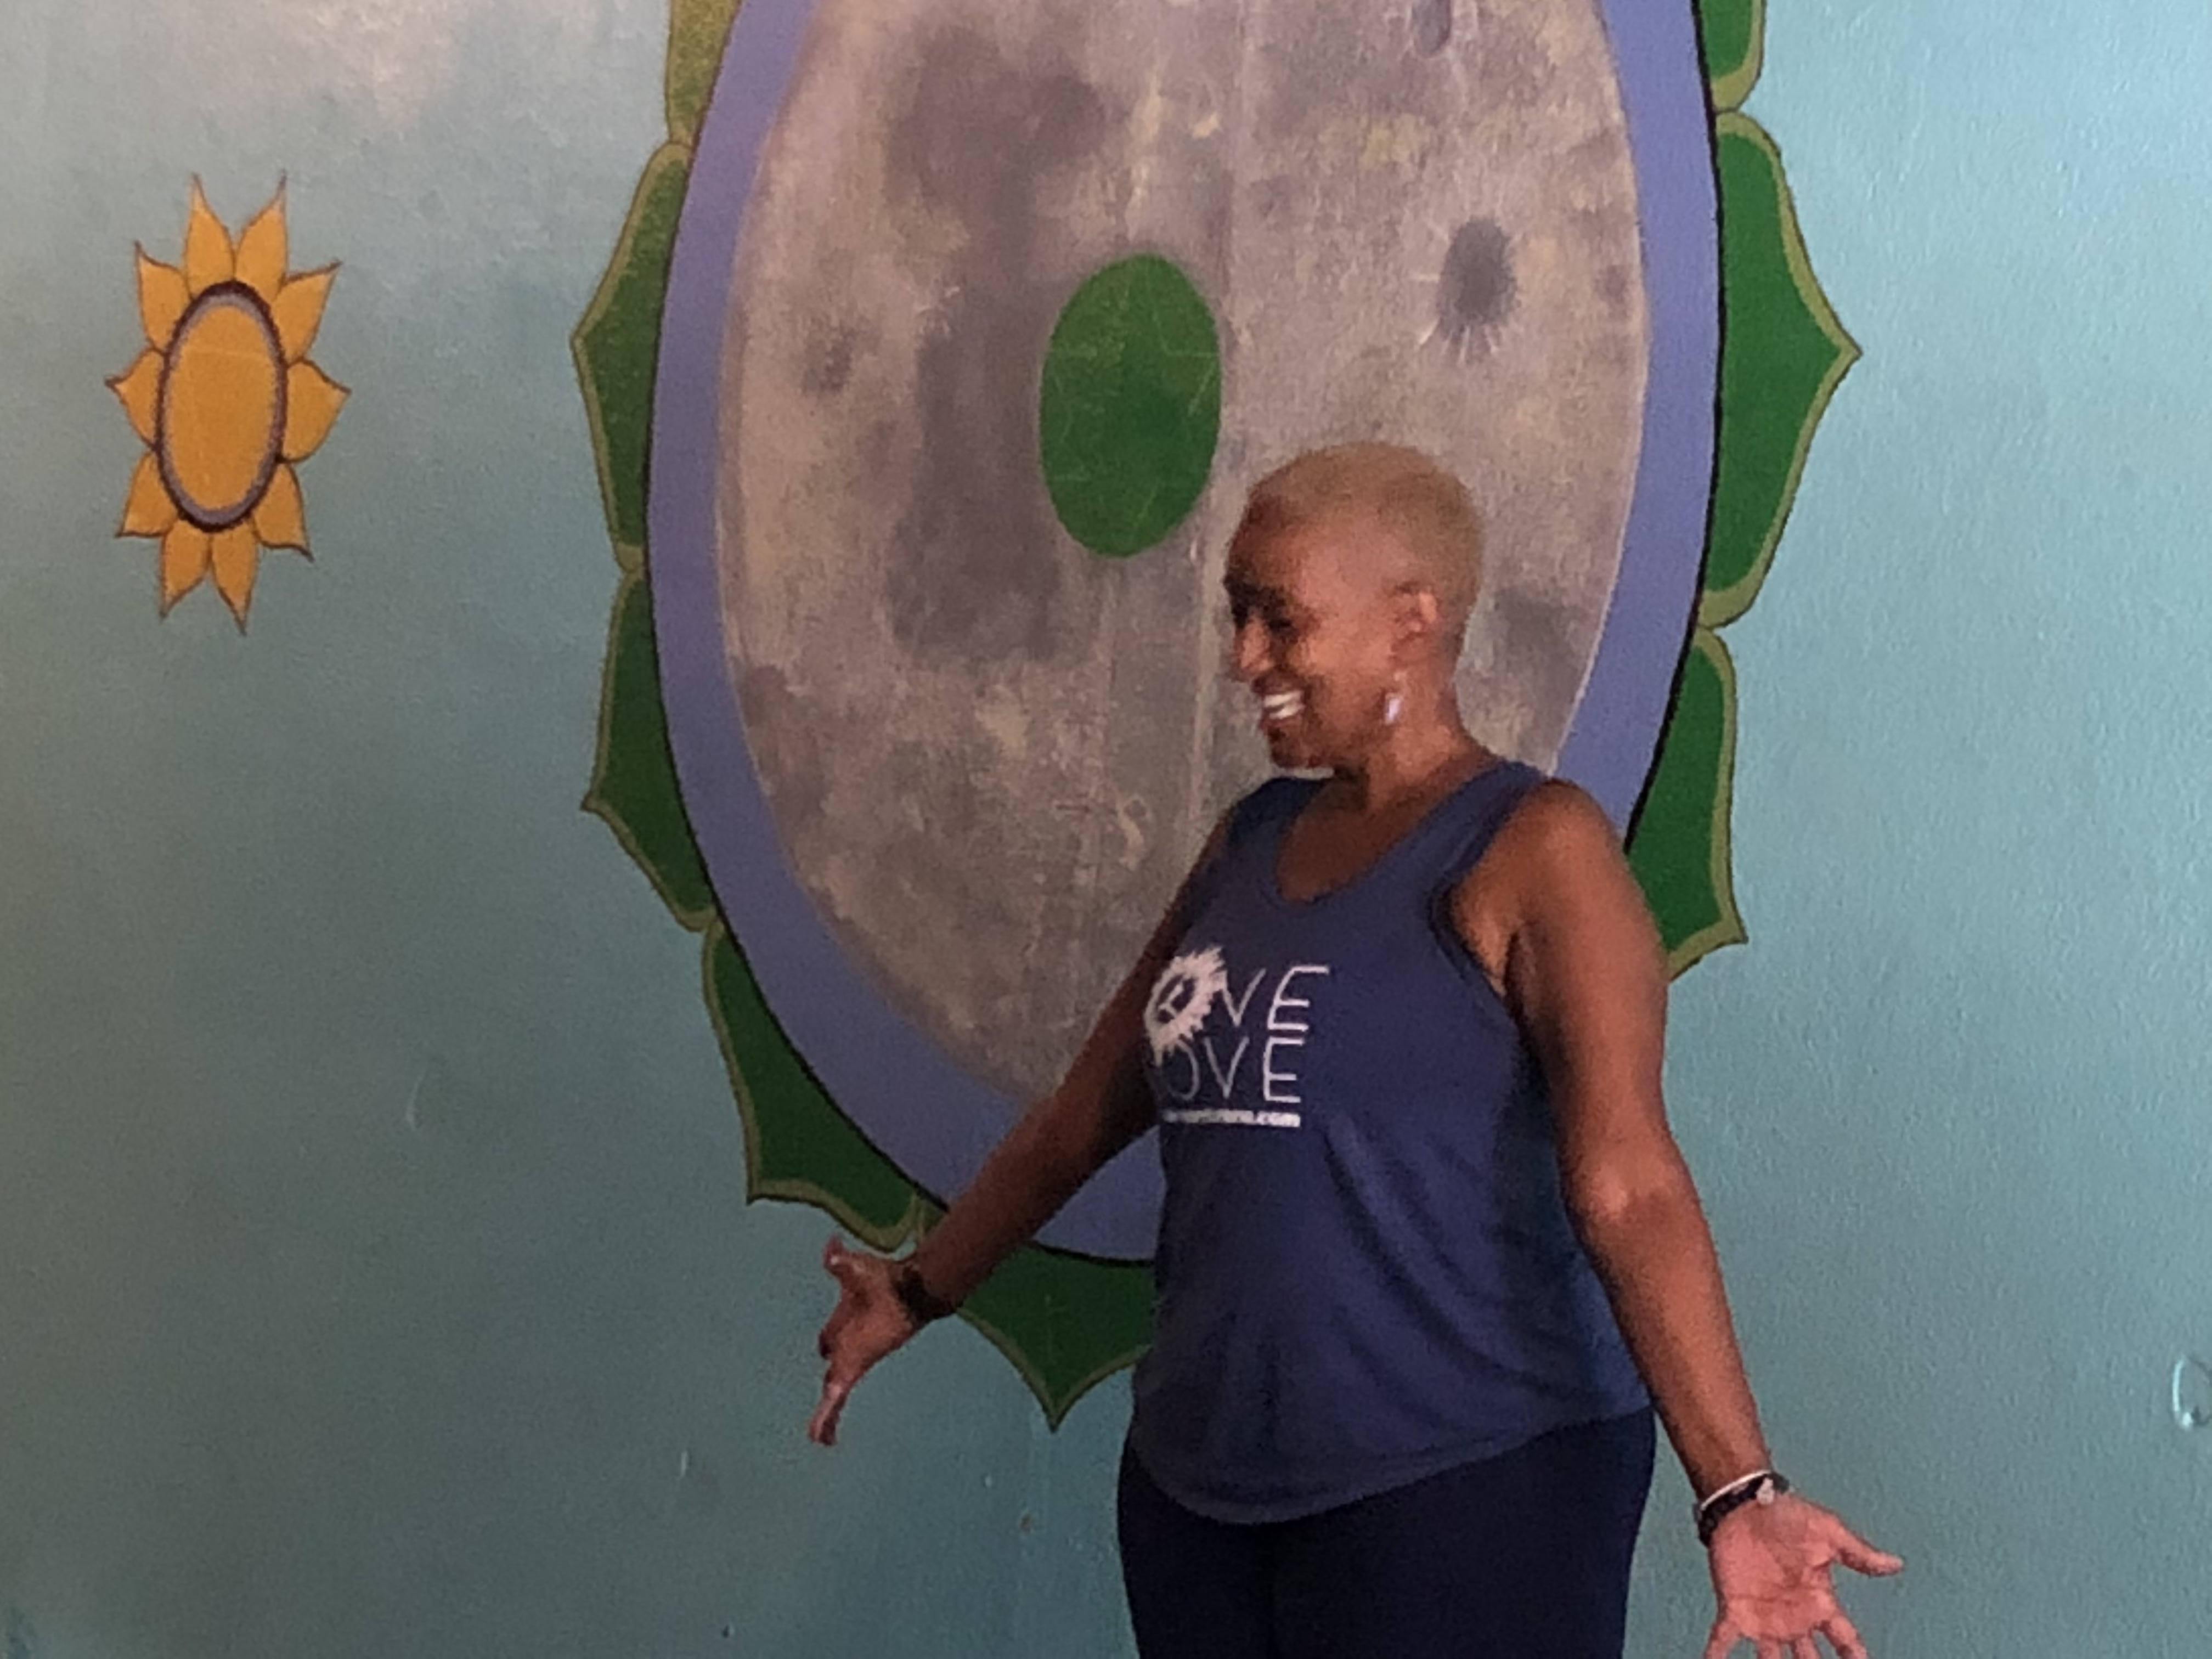 Warrior One Yoga and Row and Spin in the Audubon Park Garden District